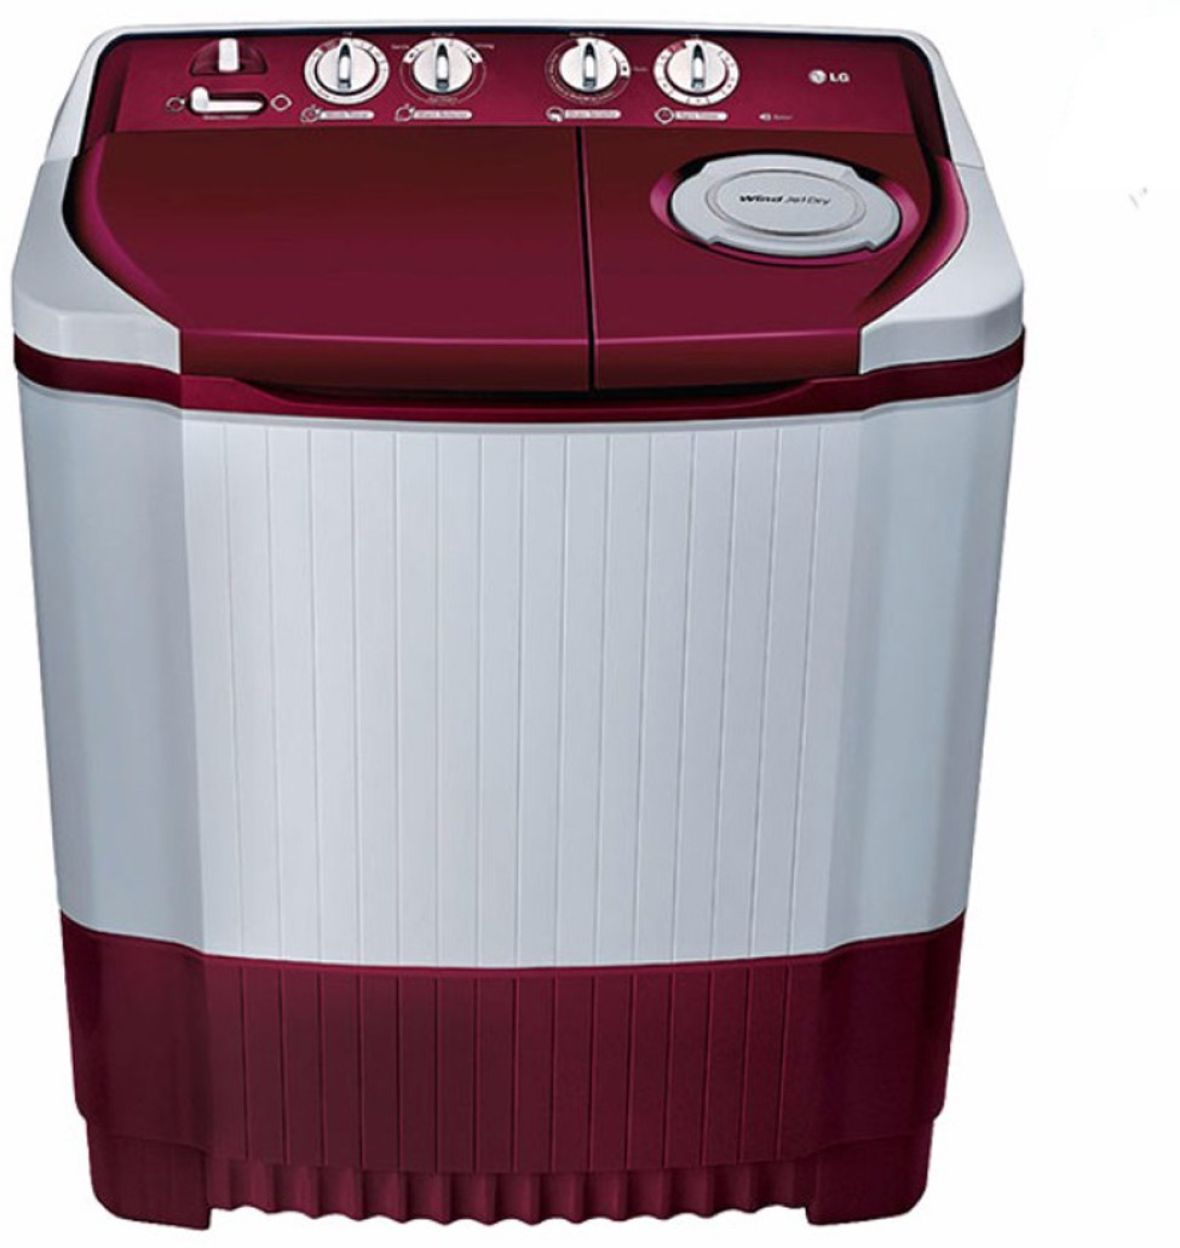 LG 7.0 Kg Semi Automatic Washing Machine (P8073R3FA)